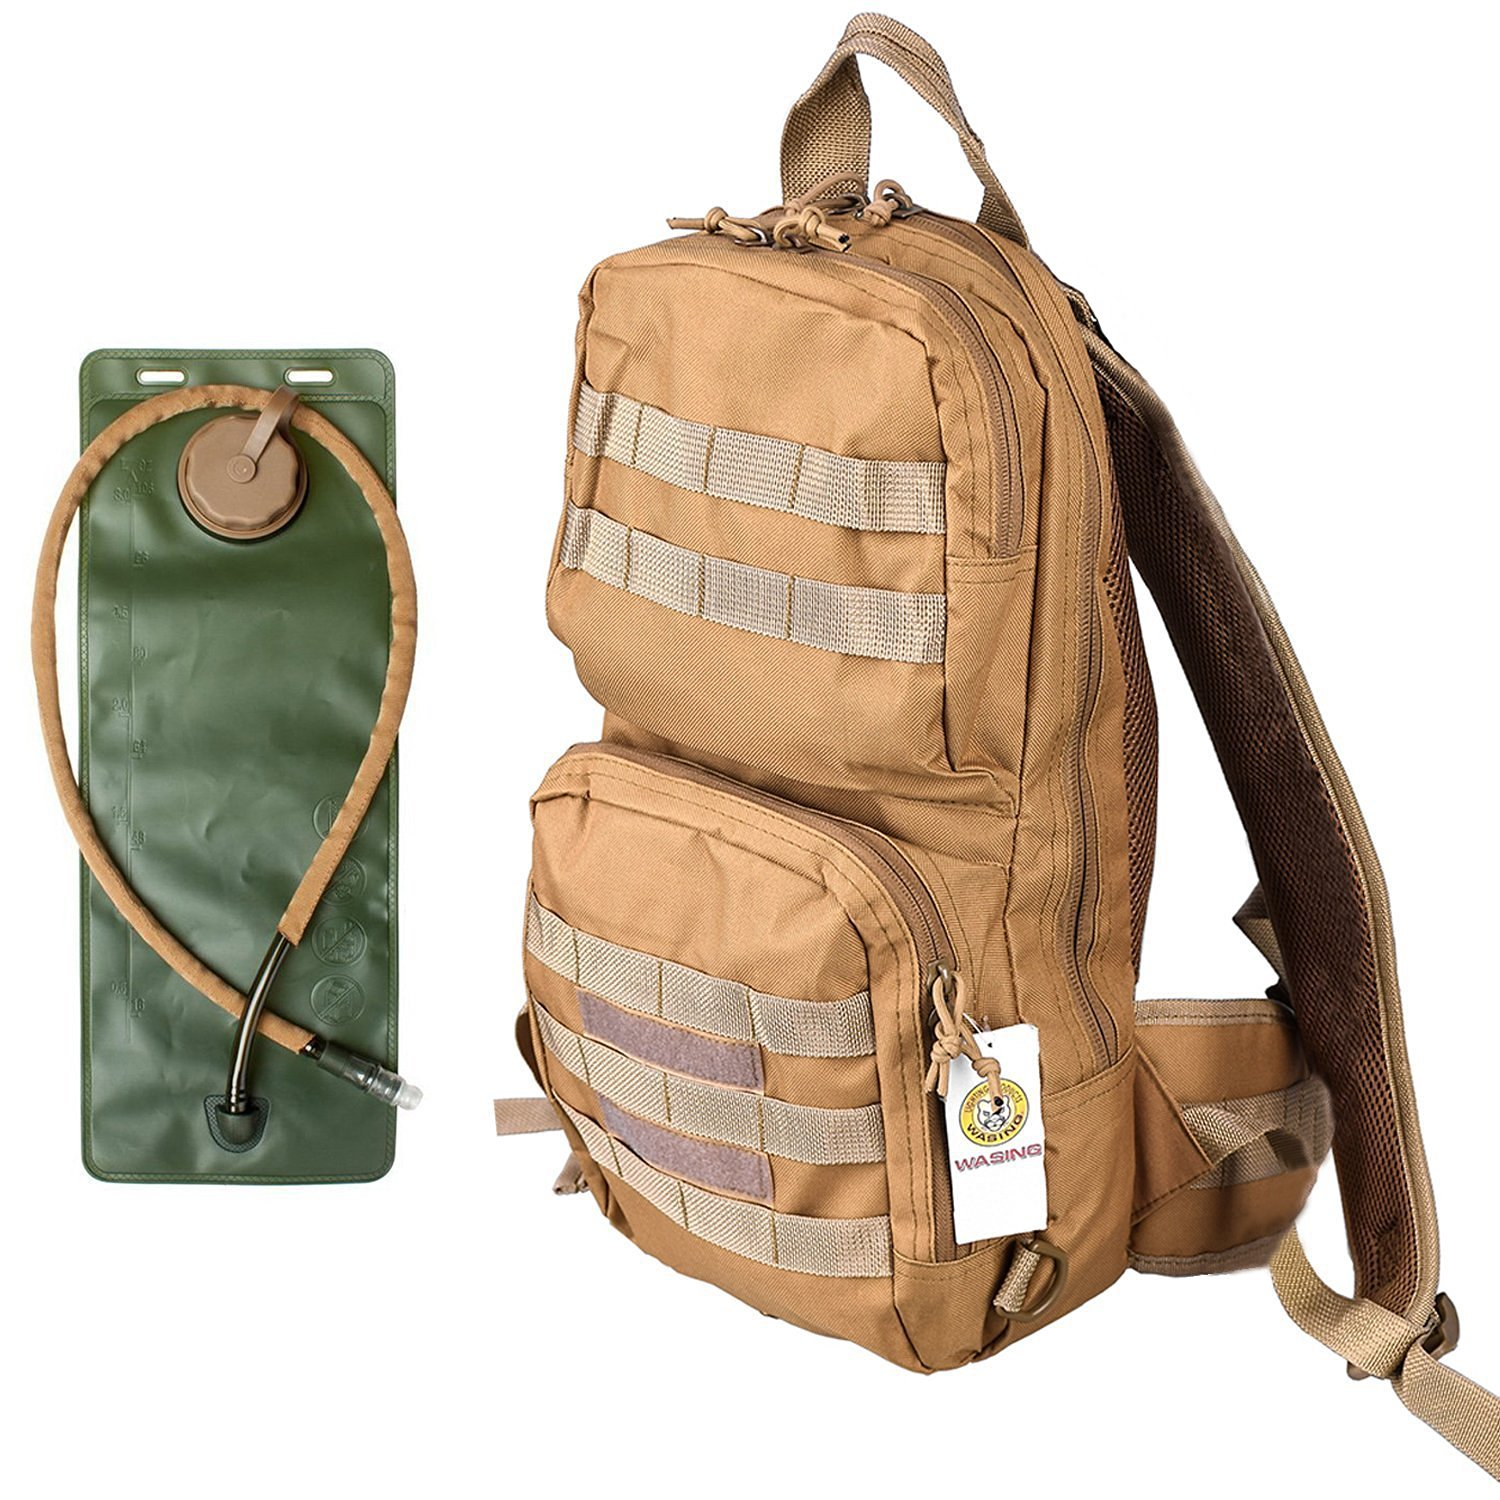 Wasing Hydration Pack